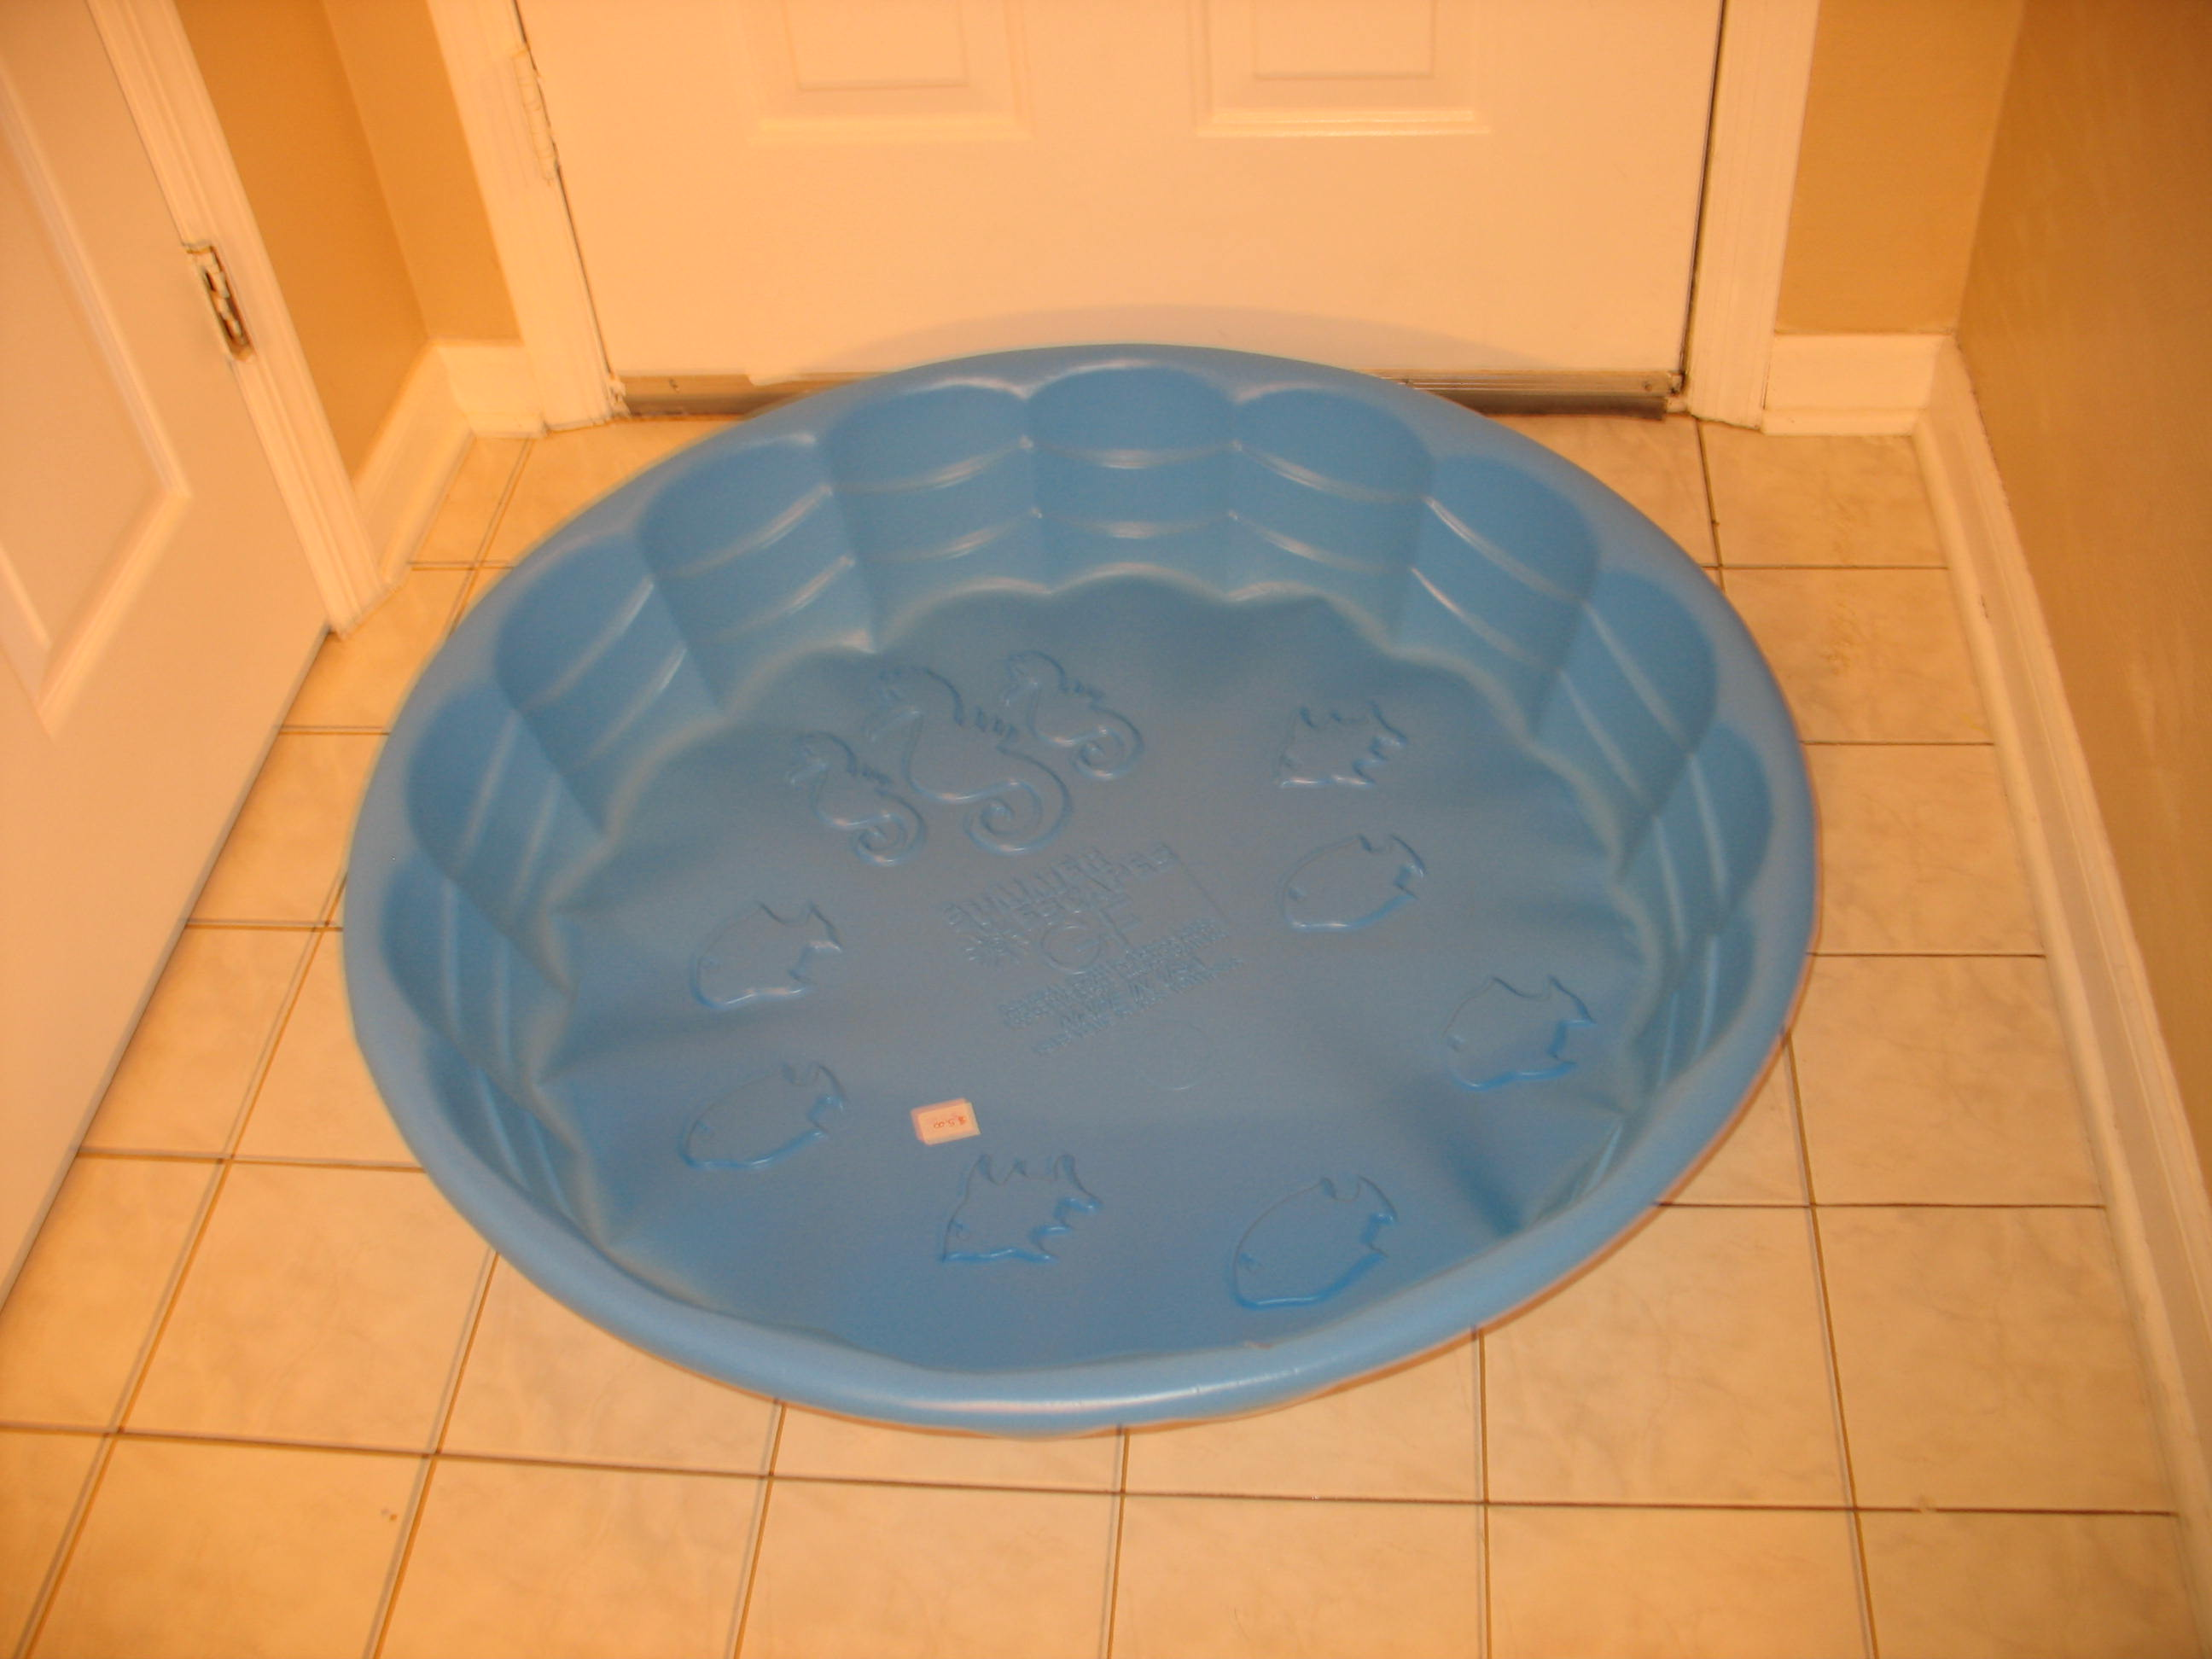 Plastic Pool For Kids Small